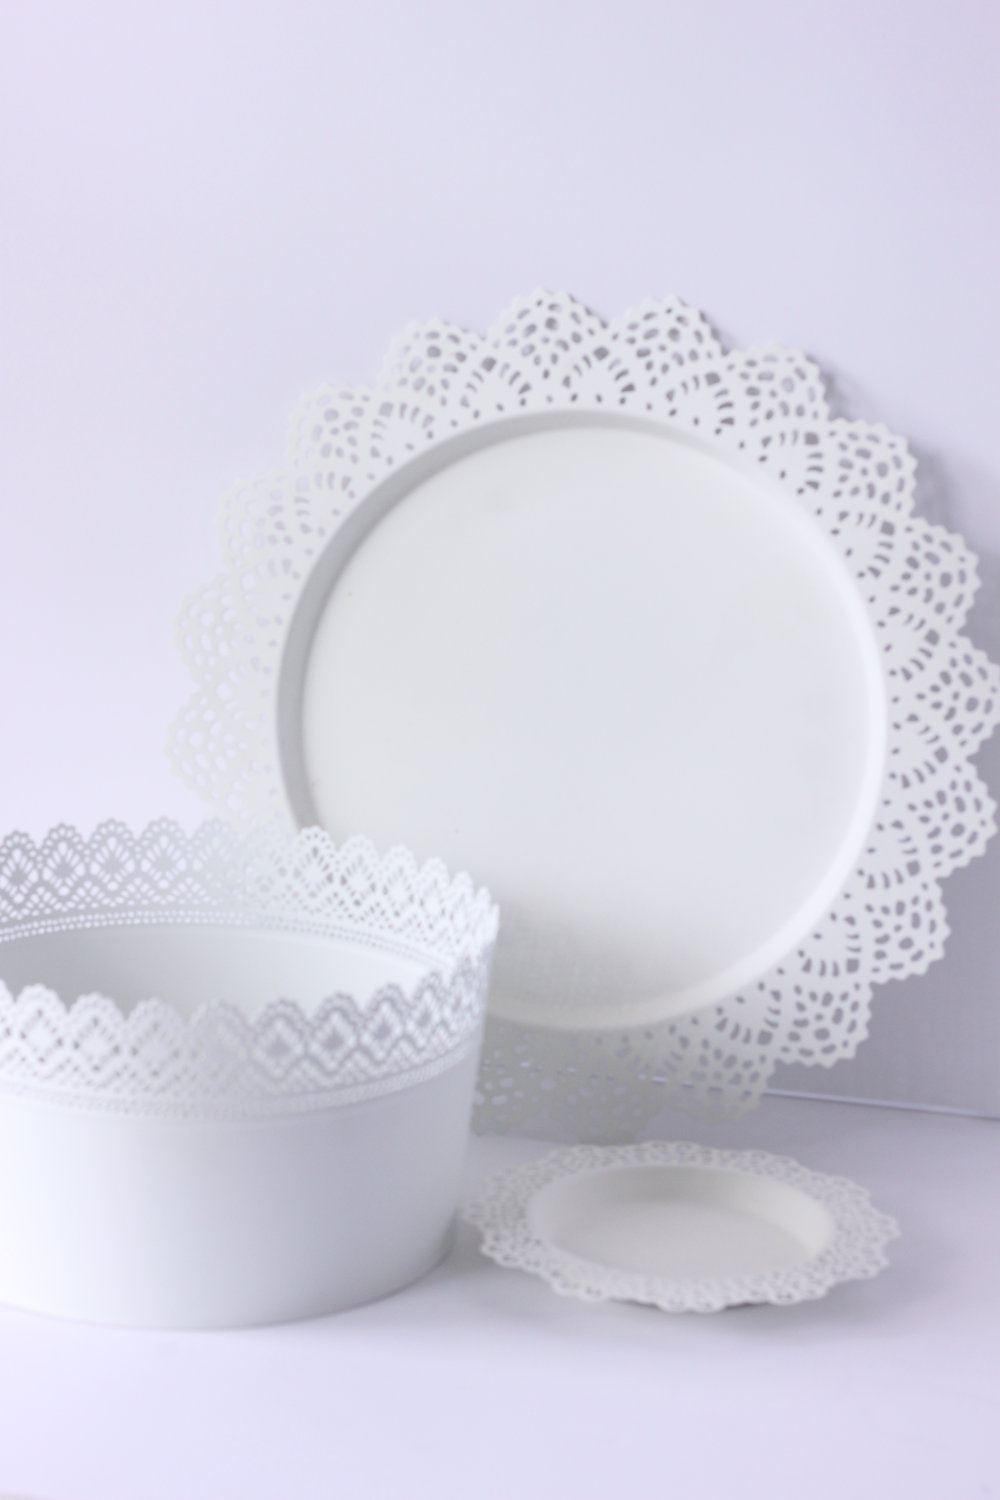 Openwork Lace Tray $4/ea.